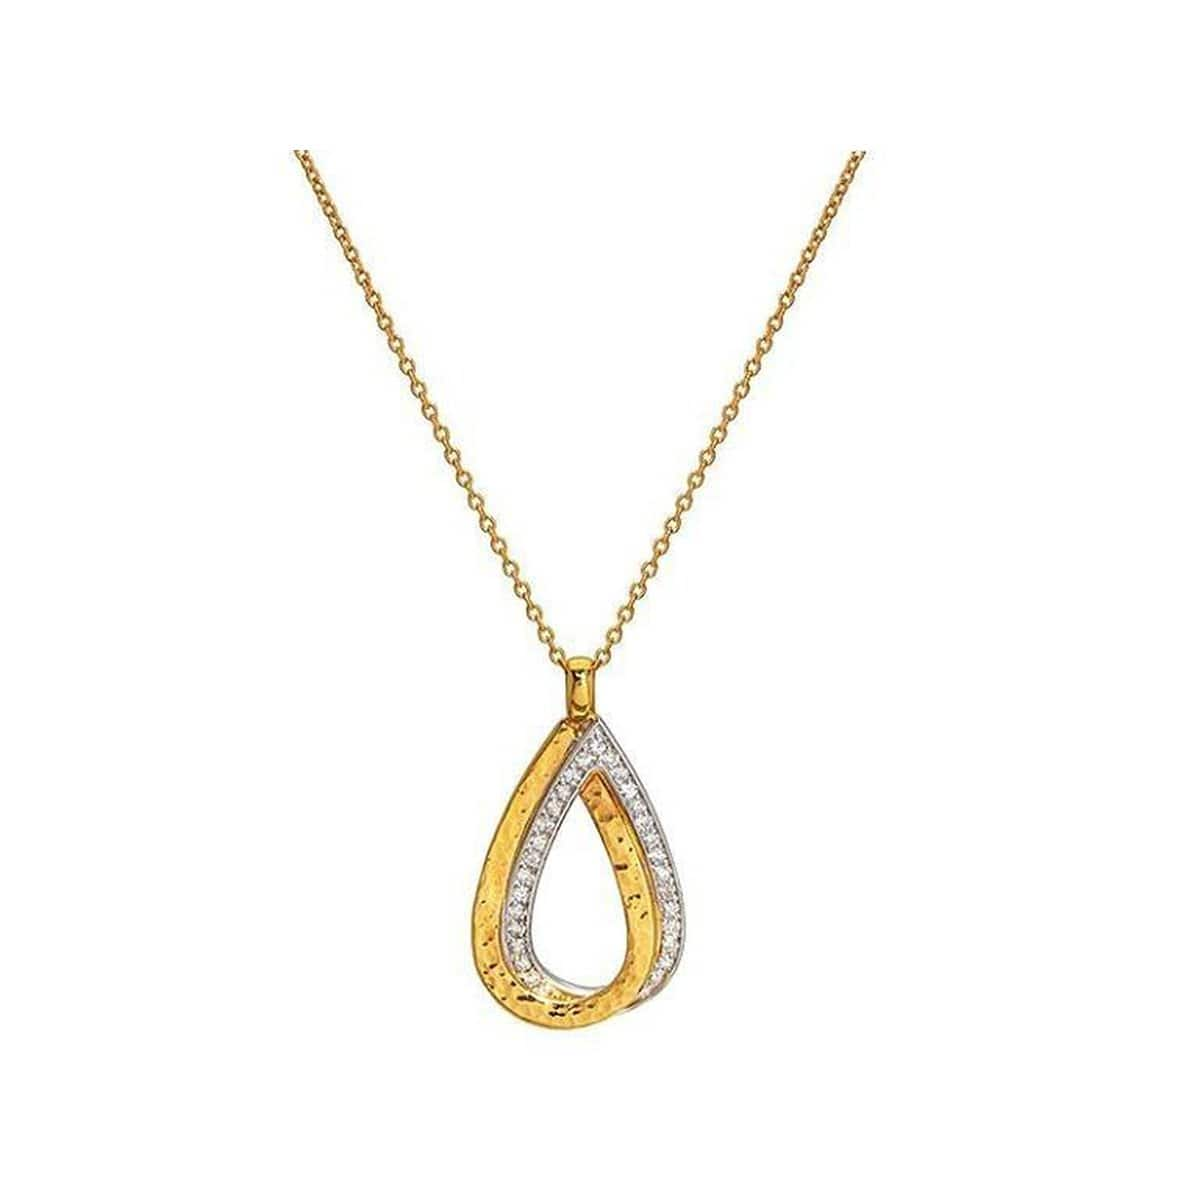 Duet 22K Gold Diamond Necklace - CHN-INT-2DR-H-28DI-GURHAN-Renee Taylor Gallery